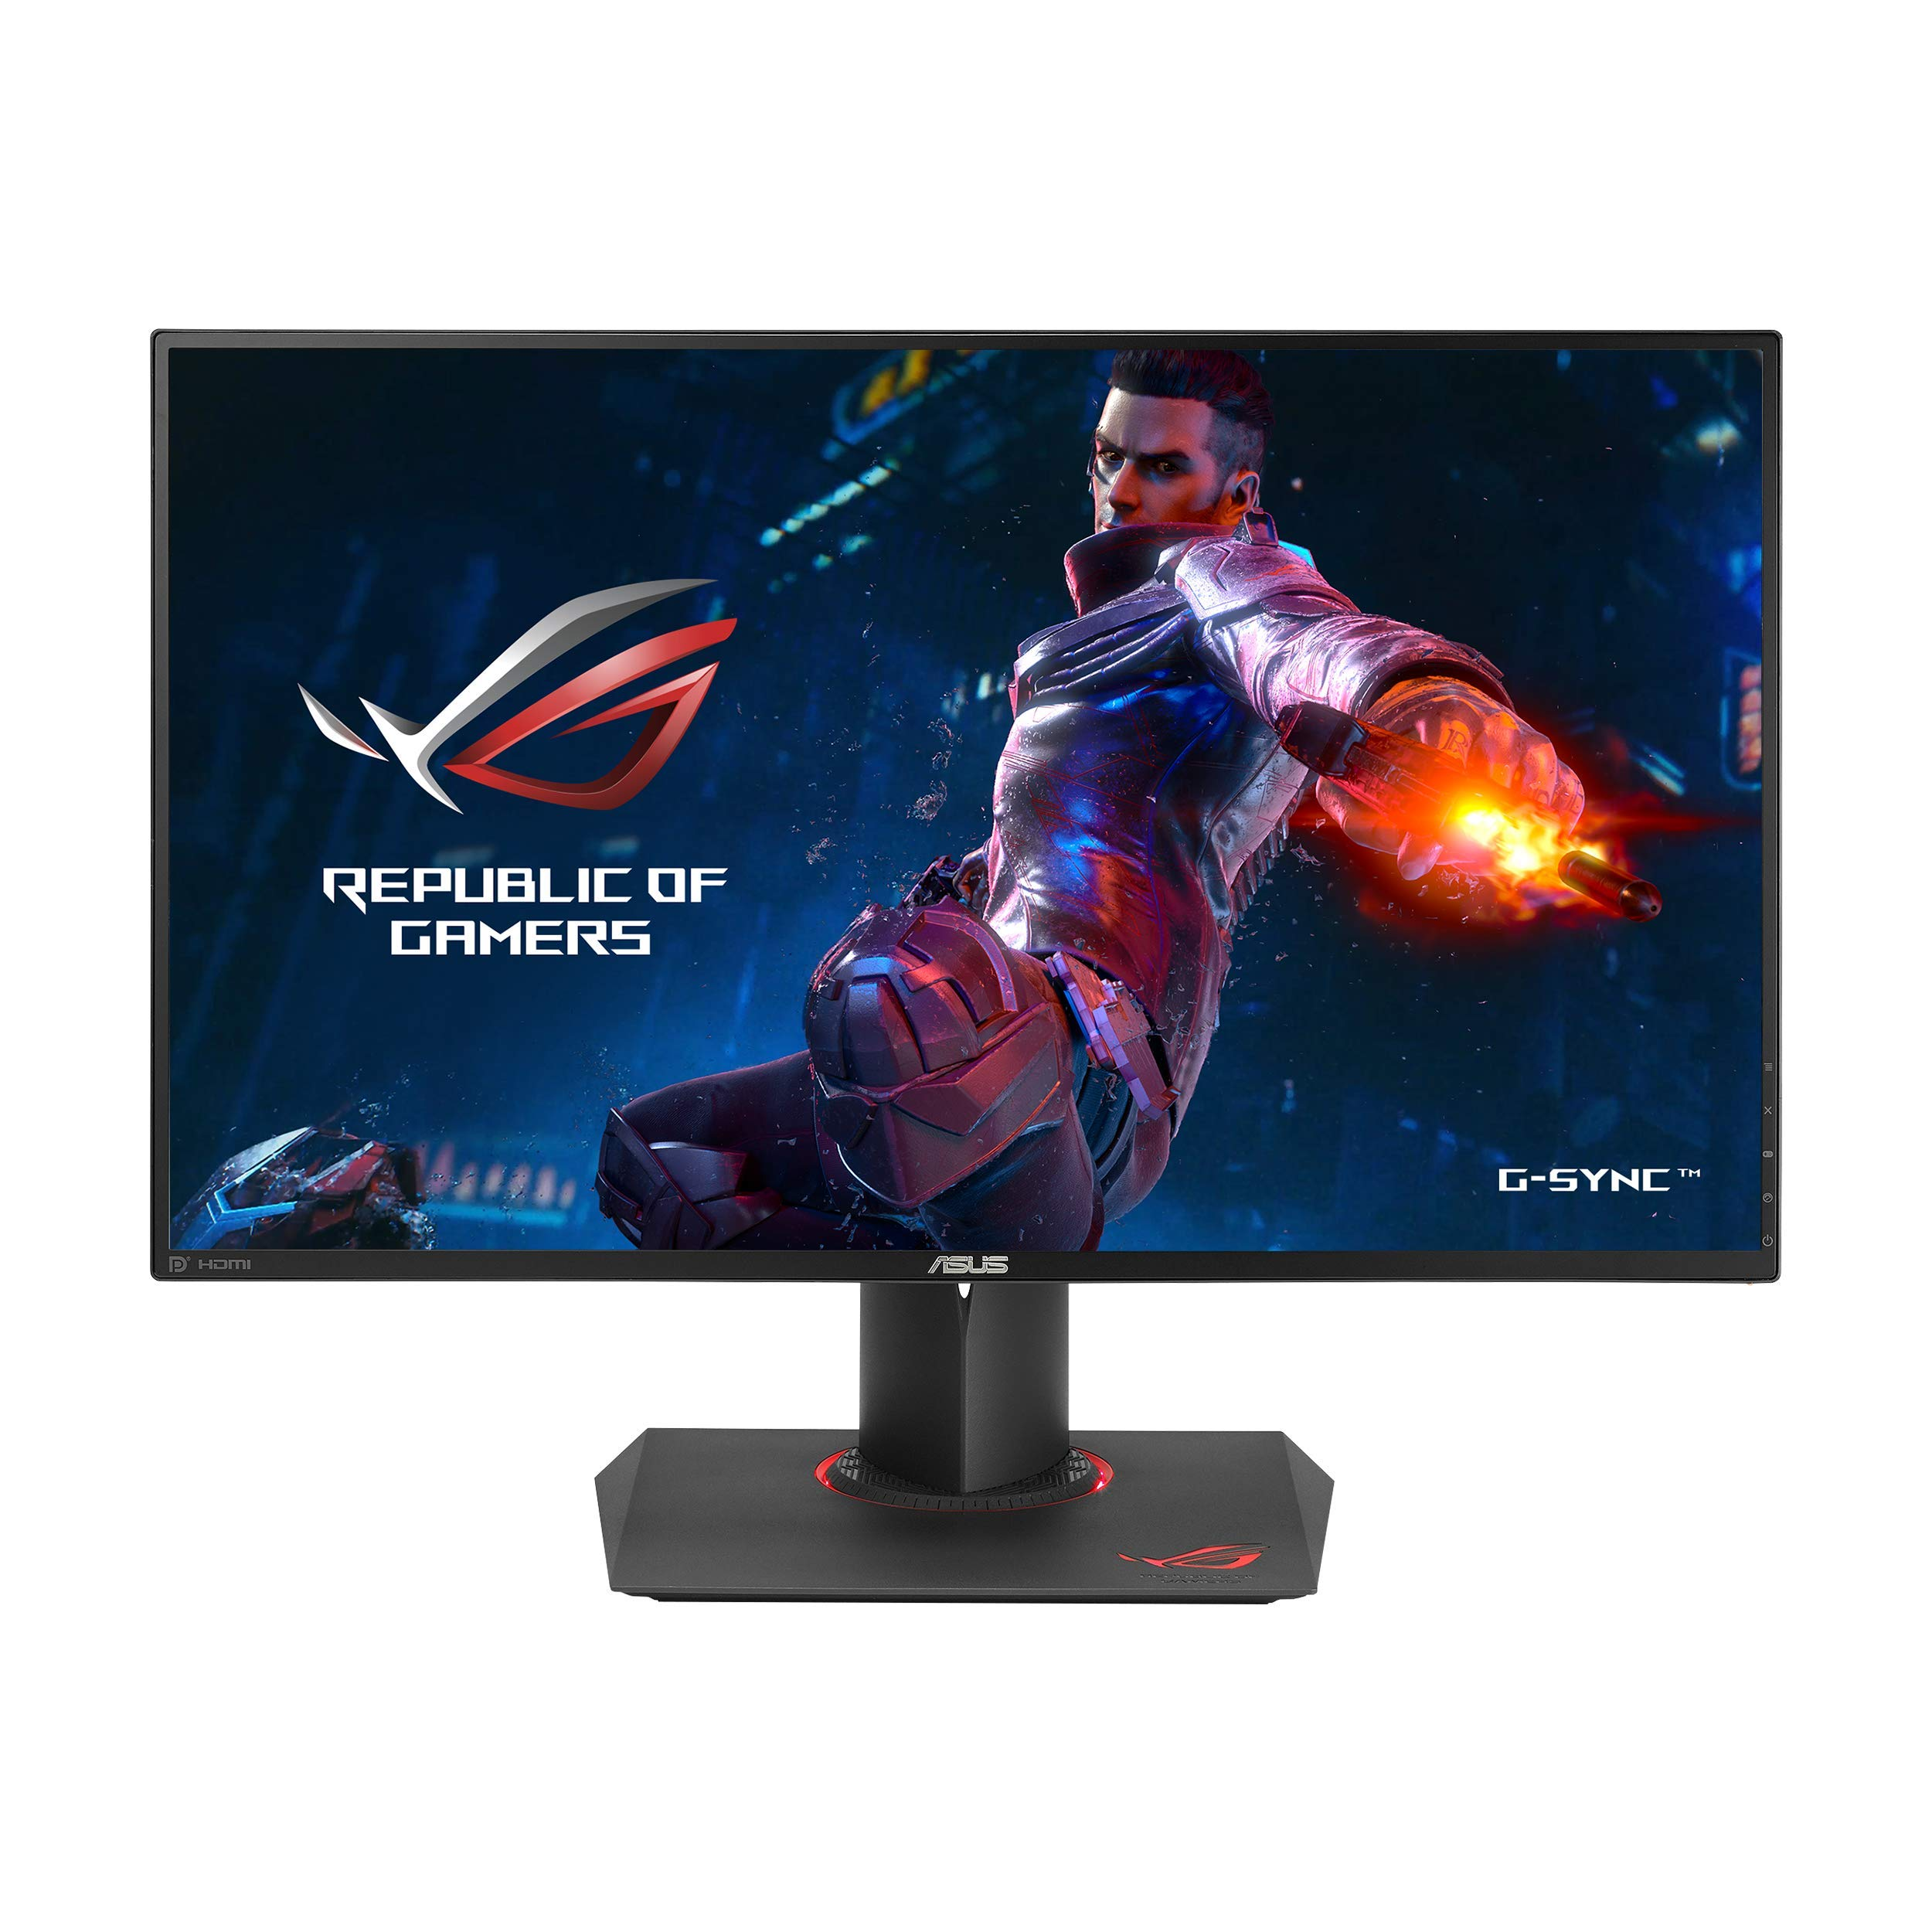 ASUS ROG PG279Q 27'' Gaming Monitor WQHD 1440p IPS 165Hz DisplayPort Adjustable Ergonomic EyeCare G-SYNC by ASUS